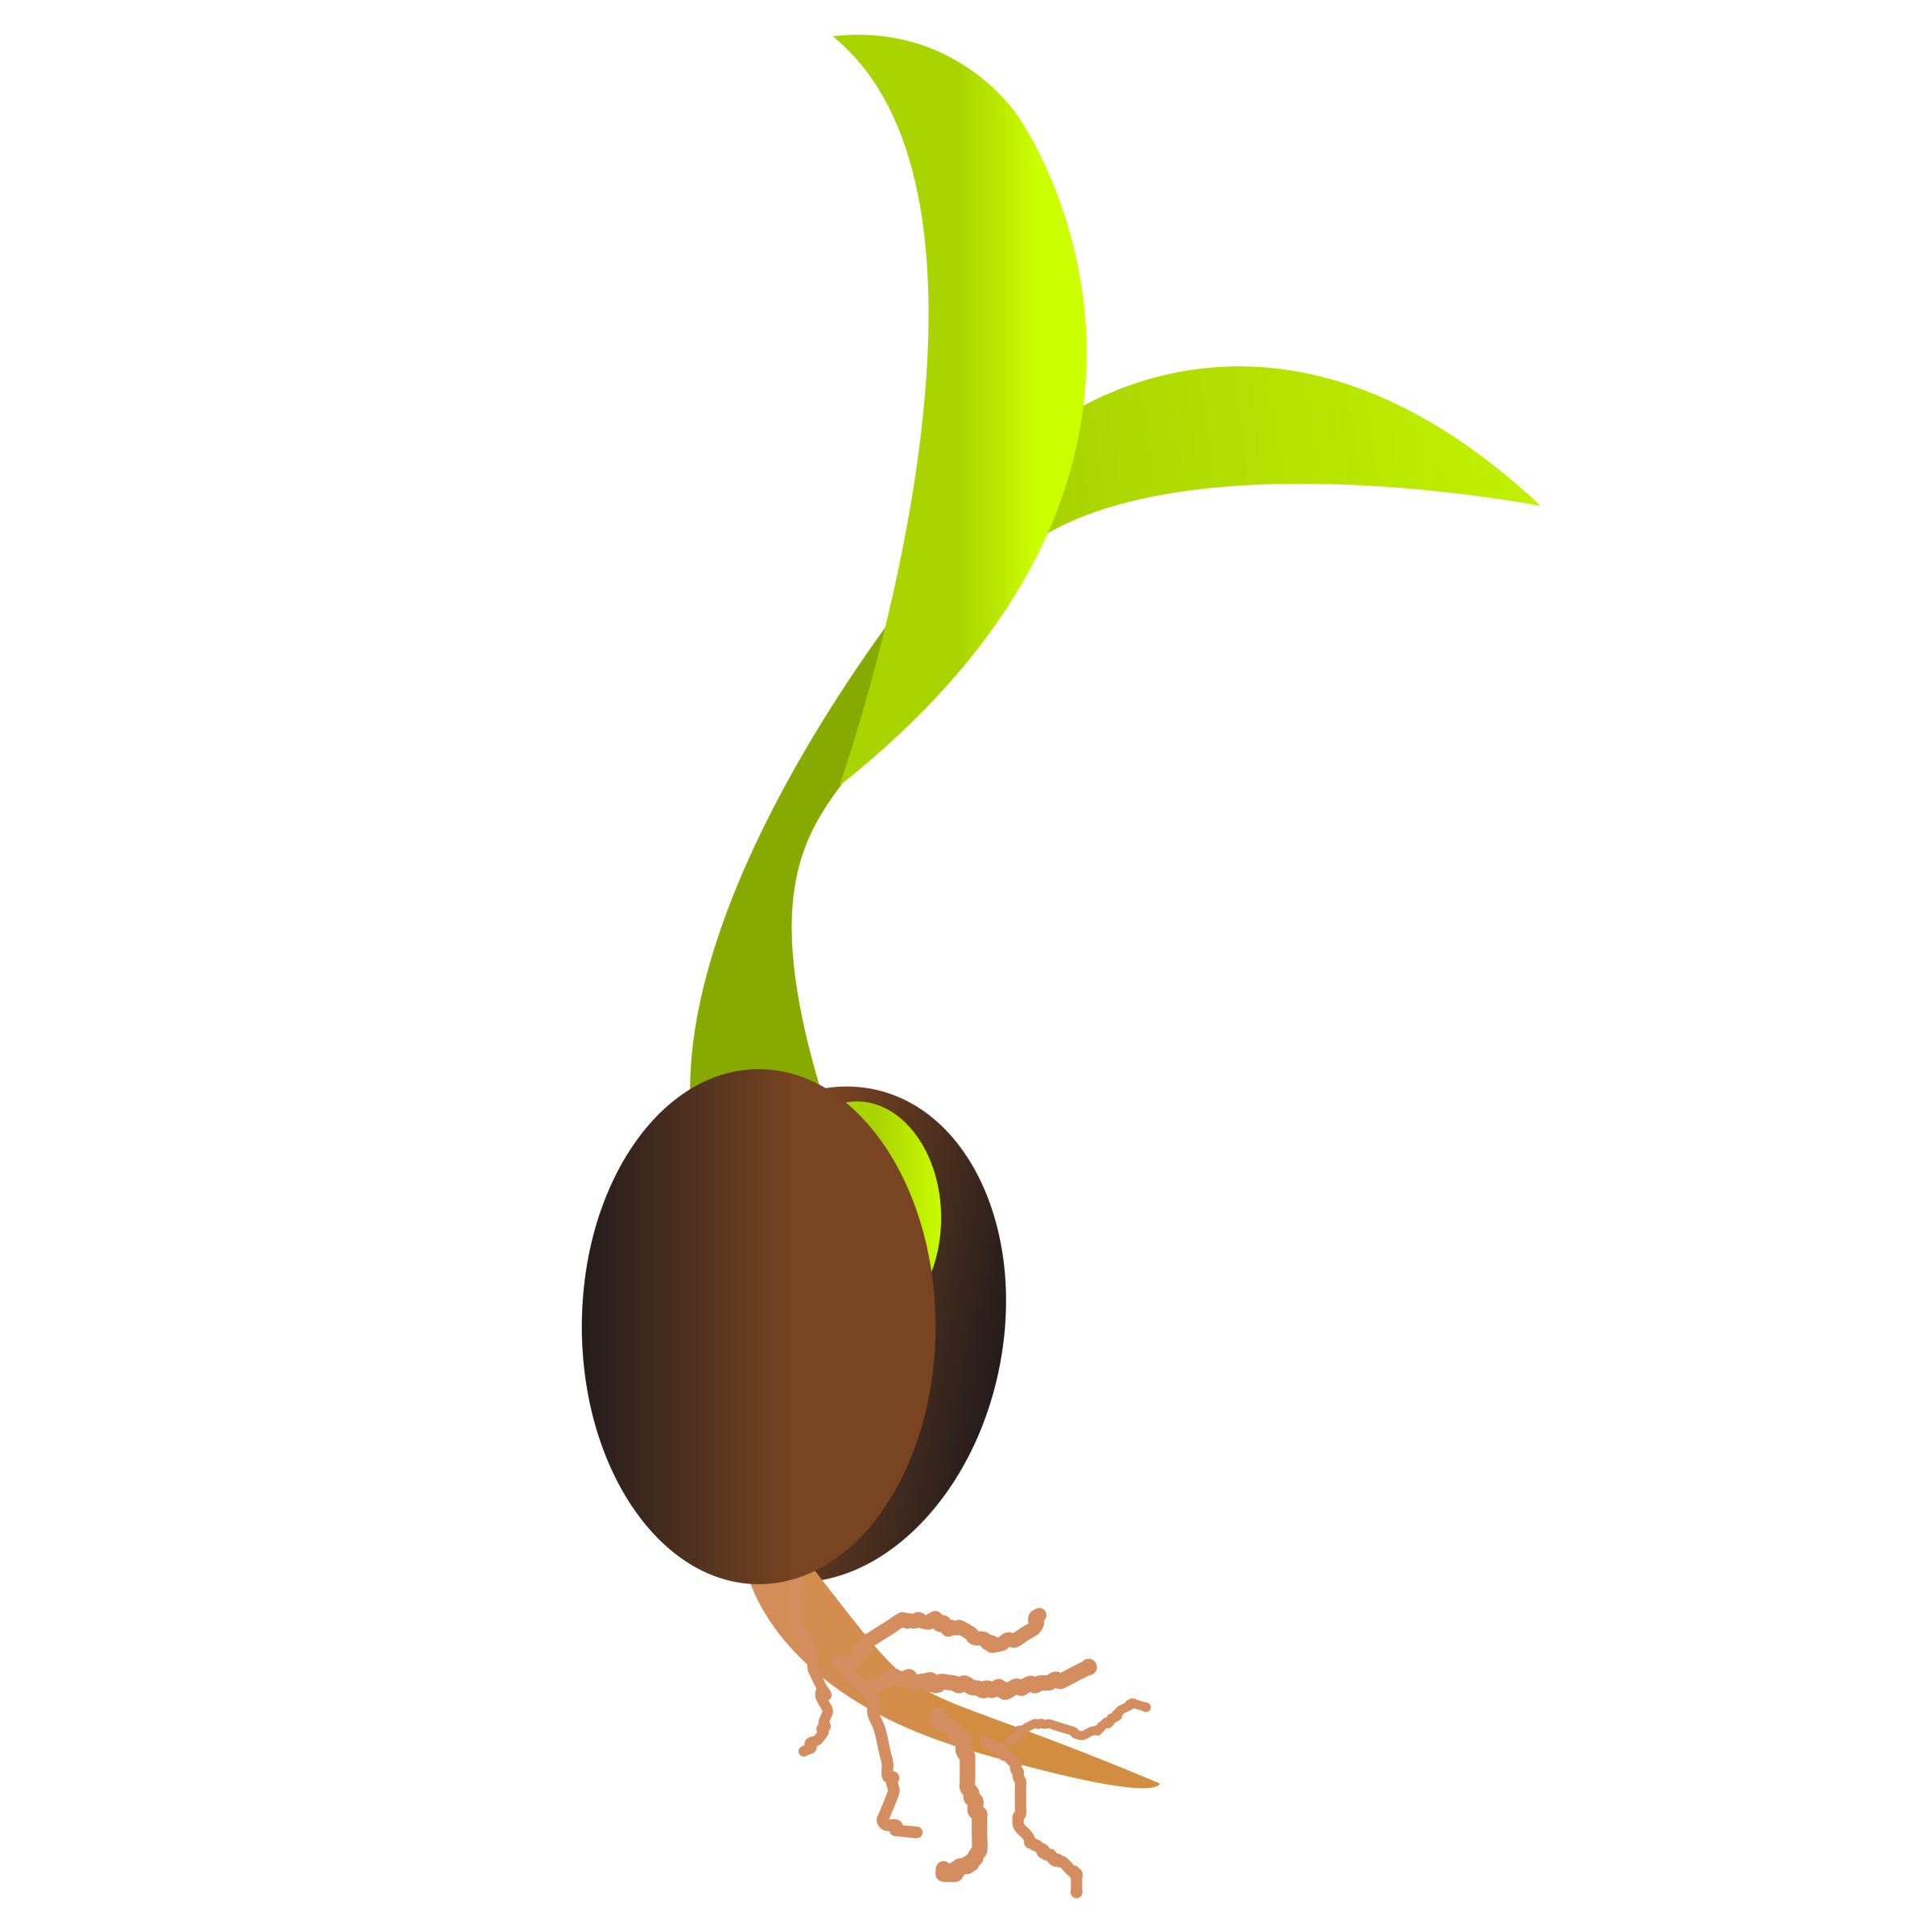 clip art freeuse library Roots clipart plant seed